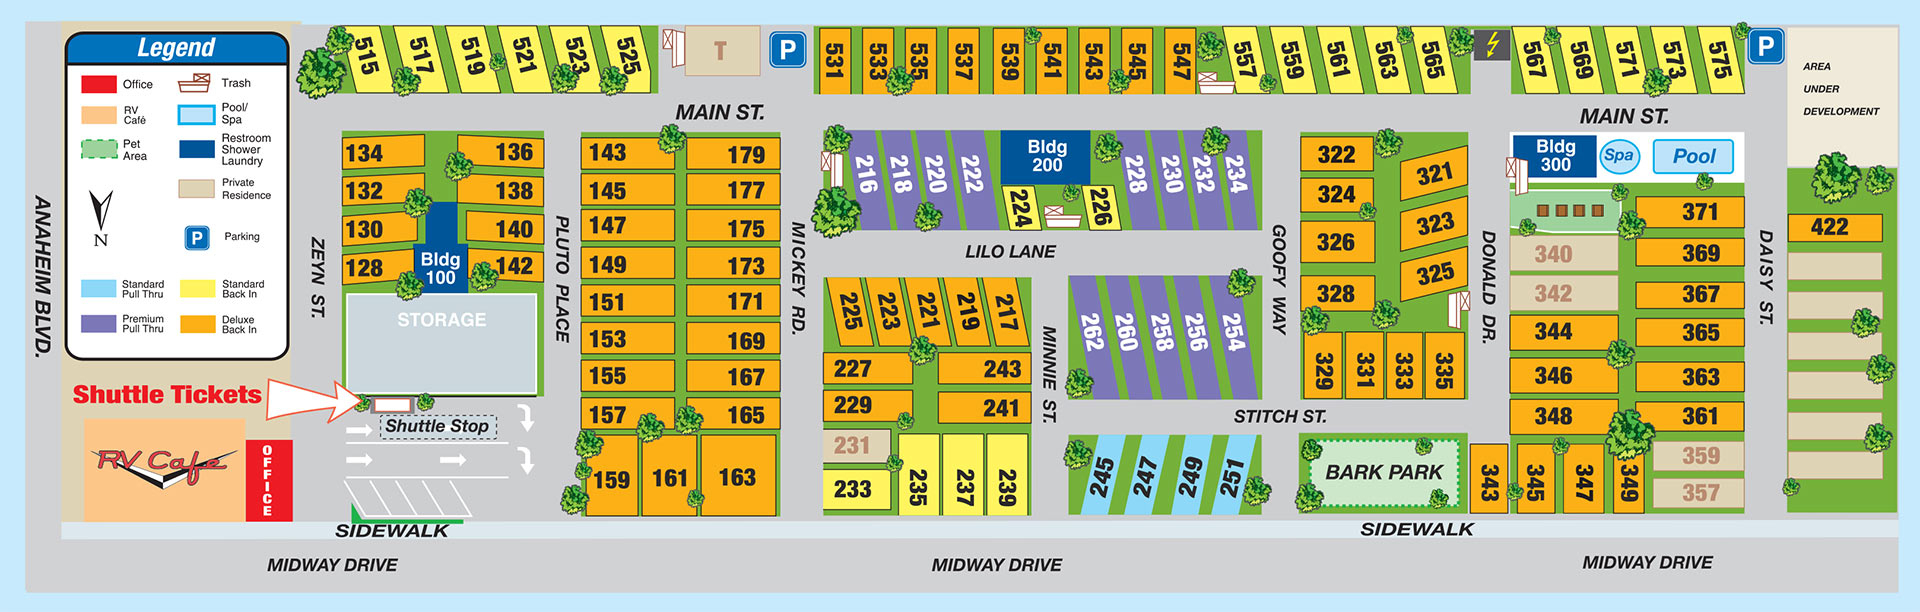 Facilities Map - Anaheim Rv Park, Facilities Map - Rv Parks California Map